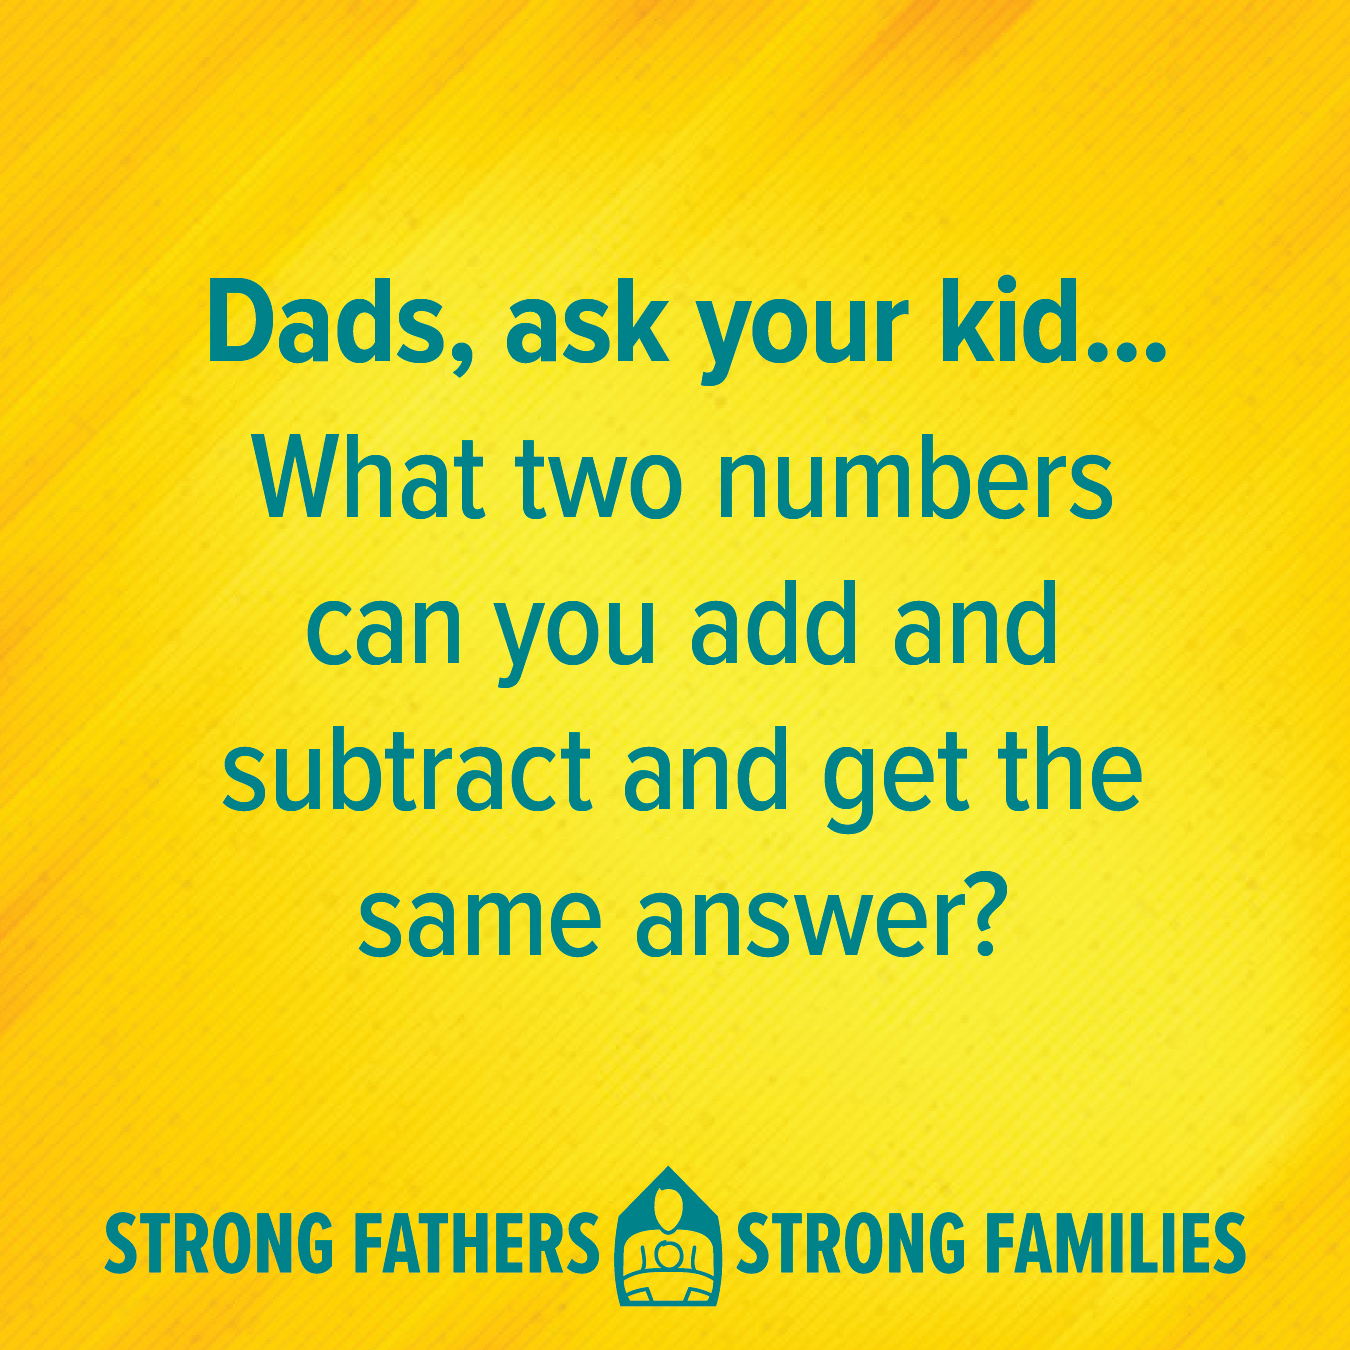 What two numbers can you add and subtract and get the same answer?